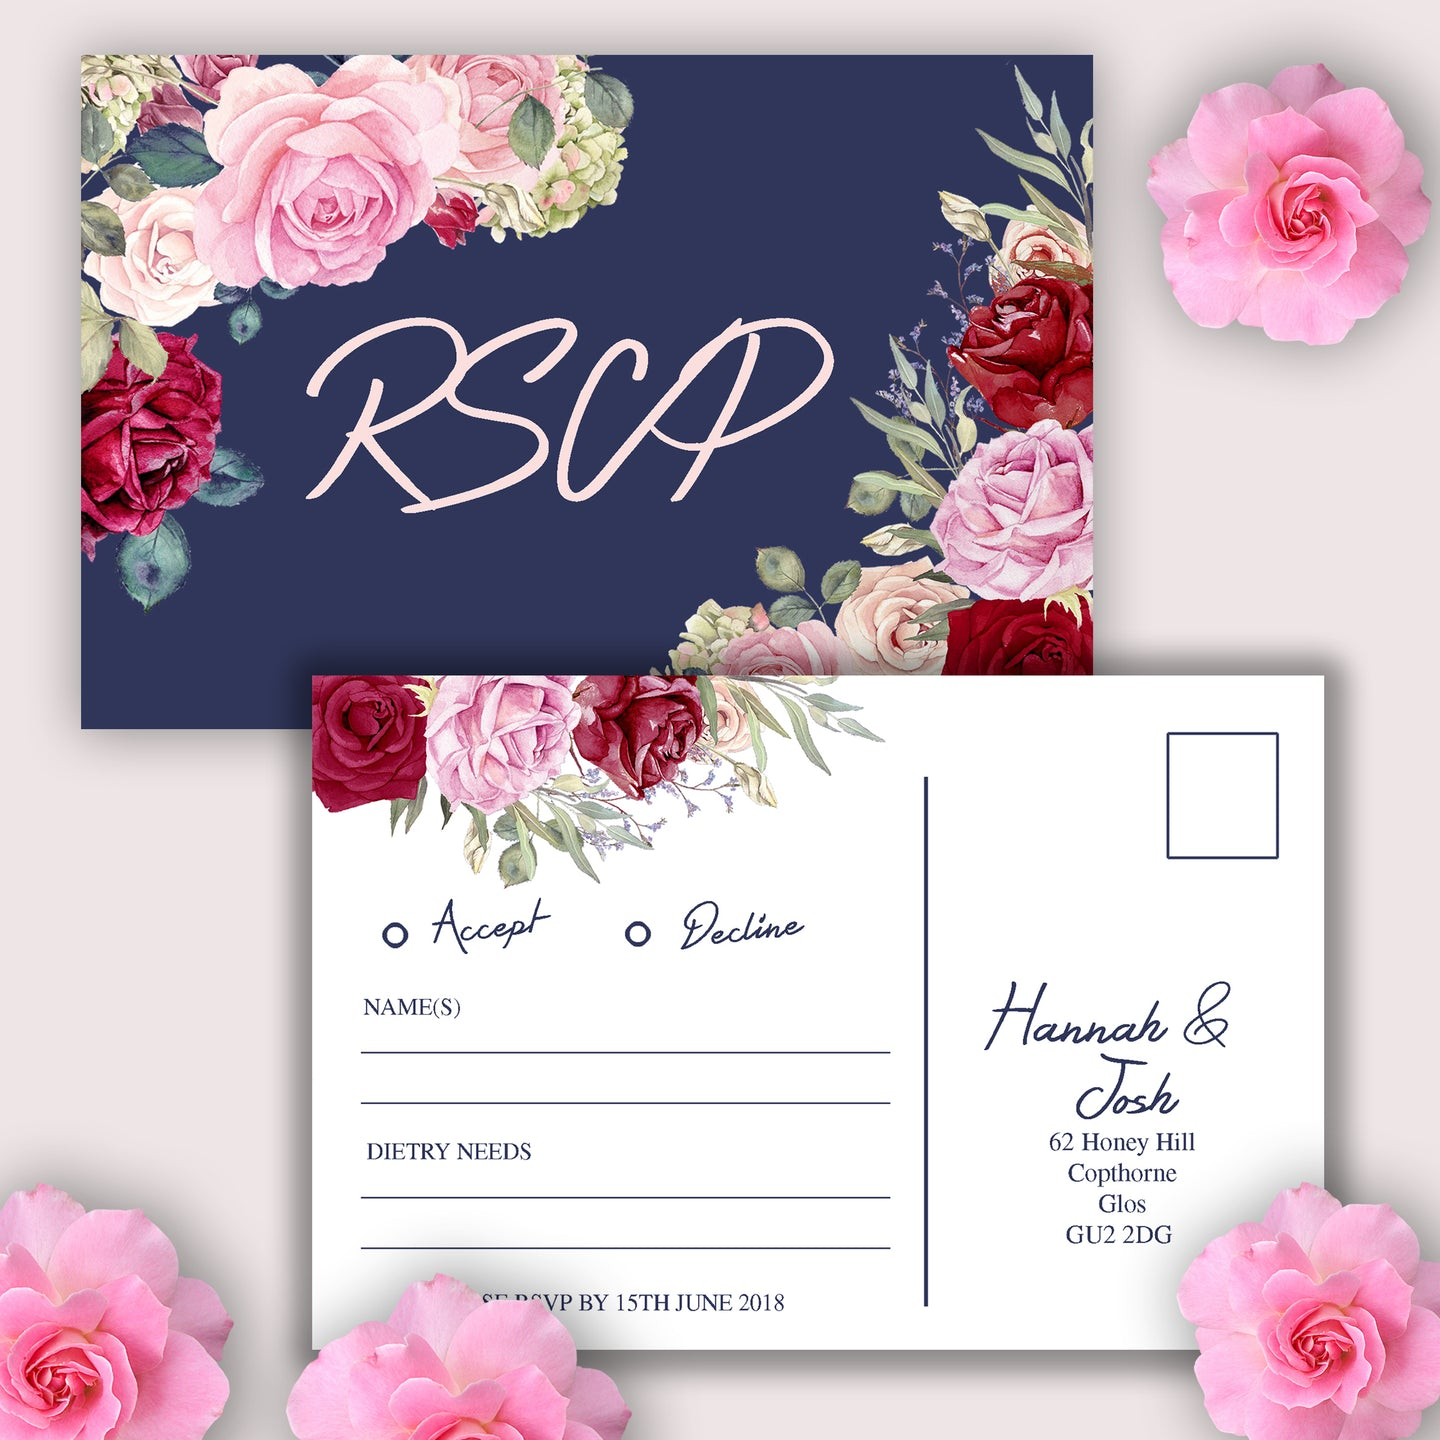 Vintage Floral Wedding RSVP Cards - CLCDesigns